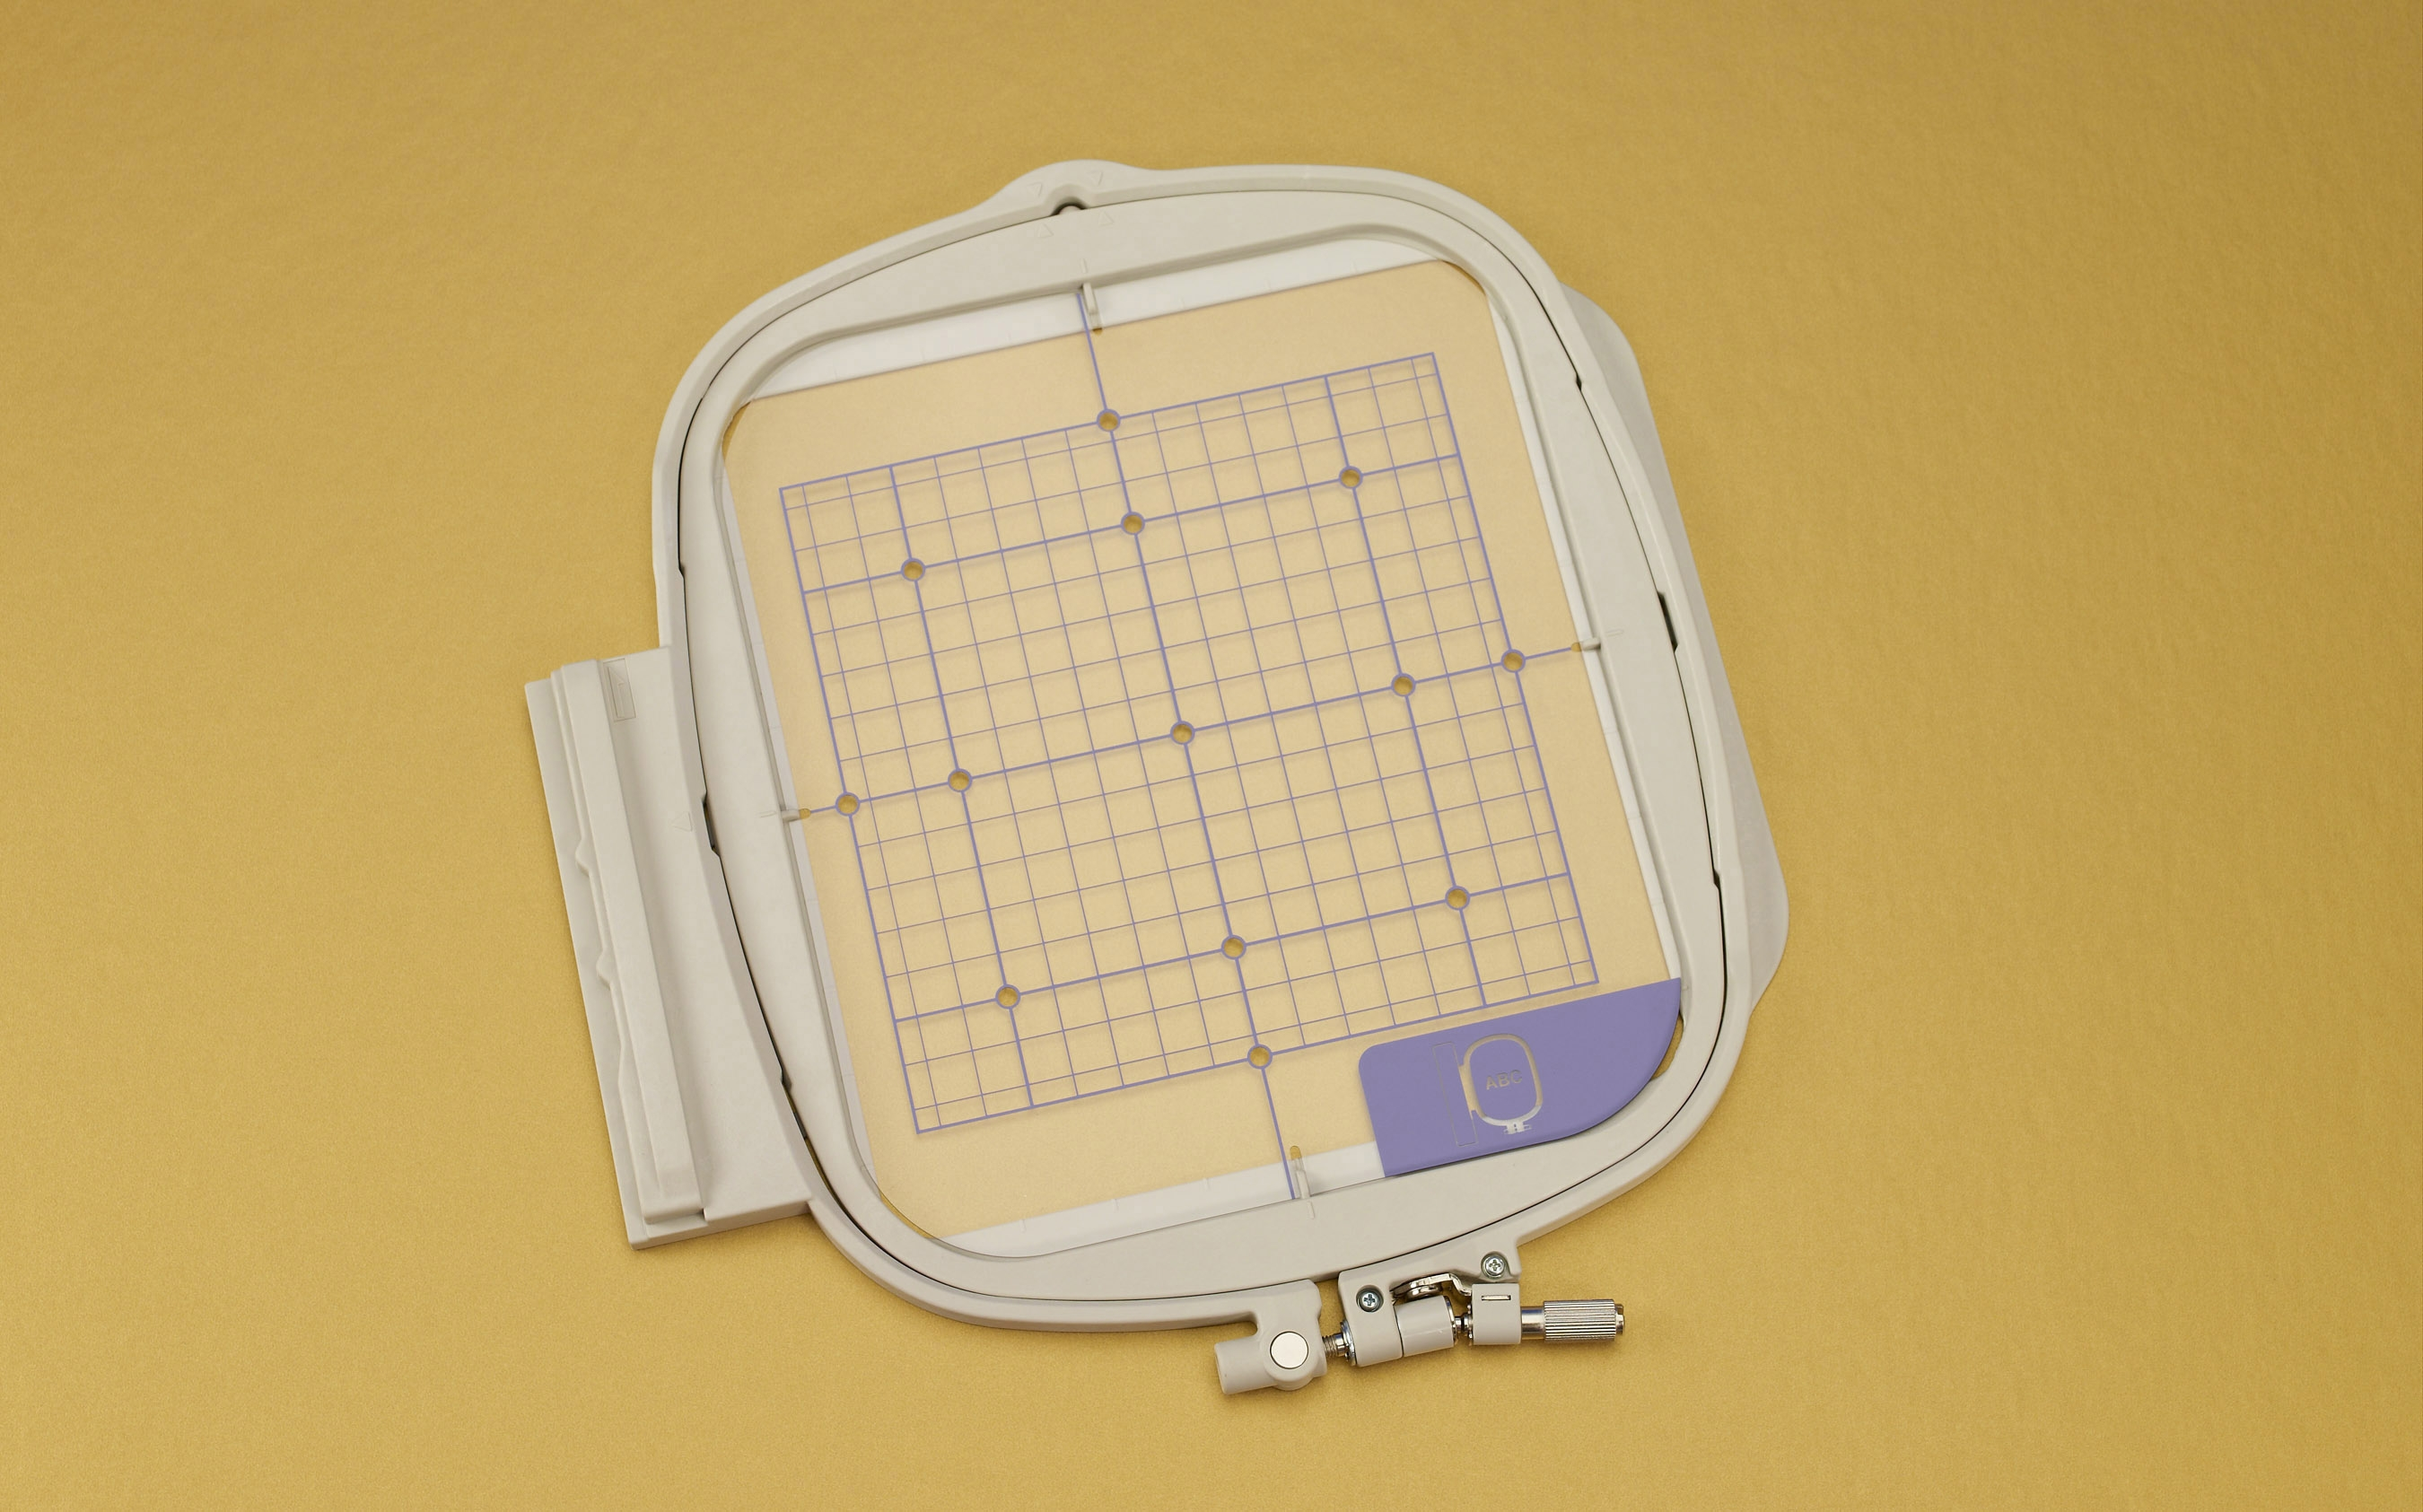 EMBROIDERY HOOP 6X6 QUILT FRAME EF91 6X6